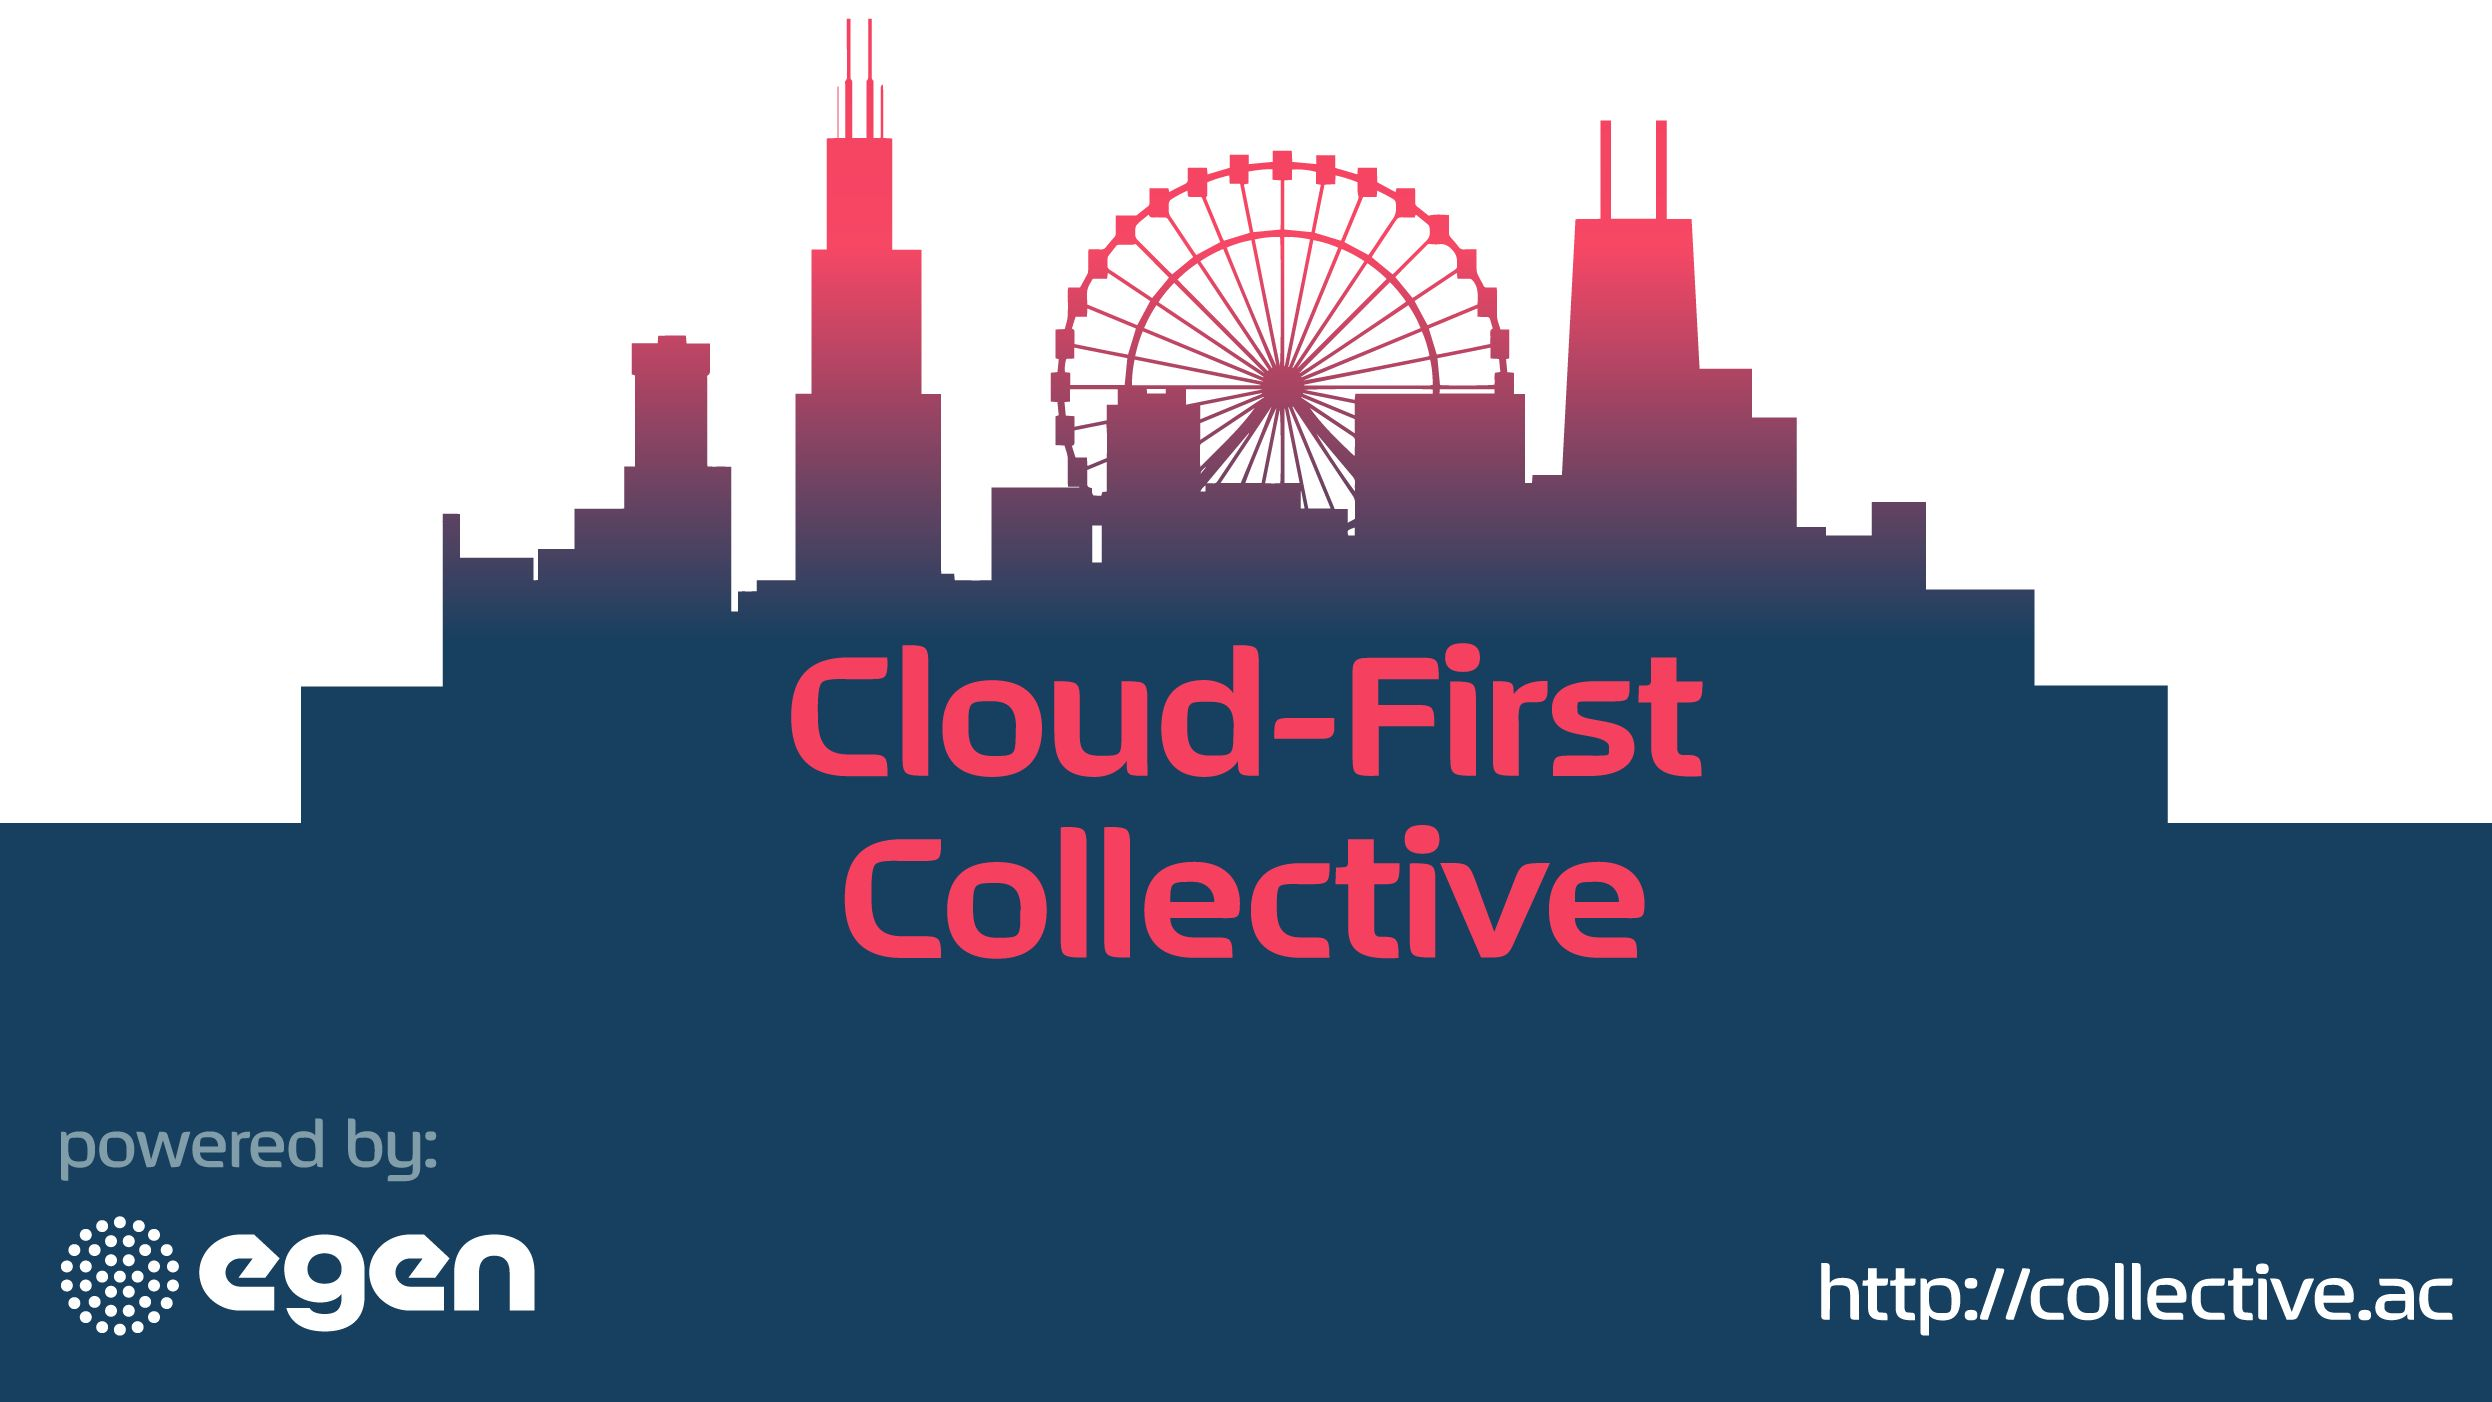 Cloud-First Collective